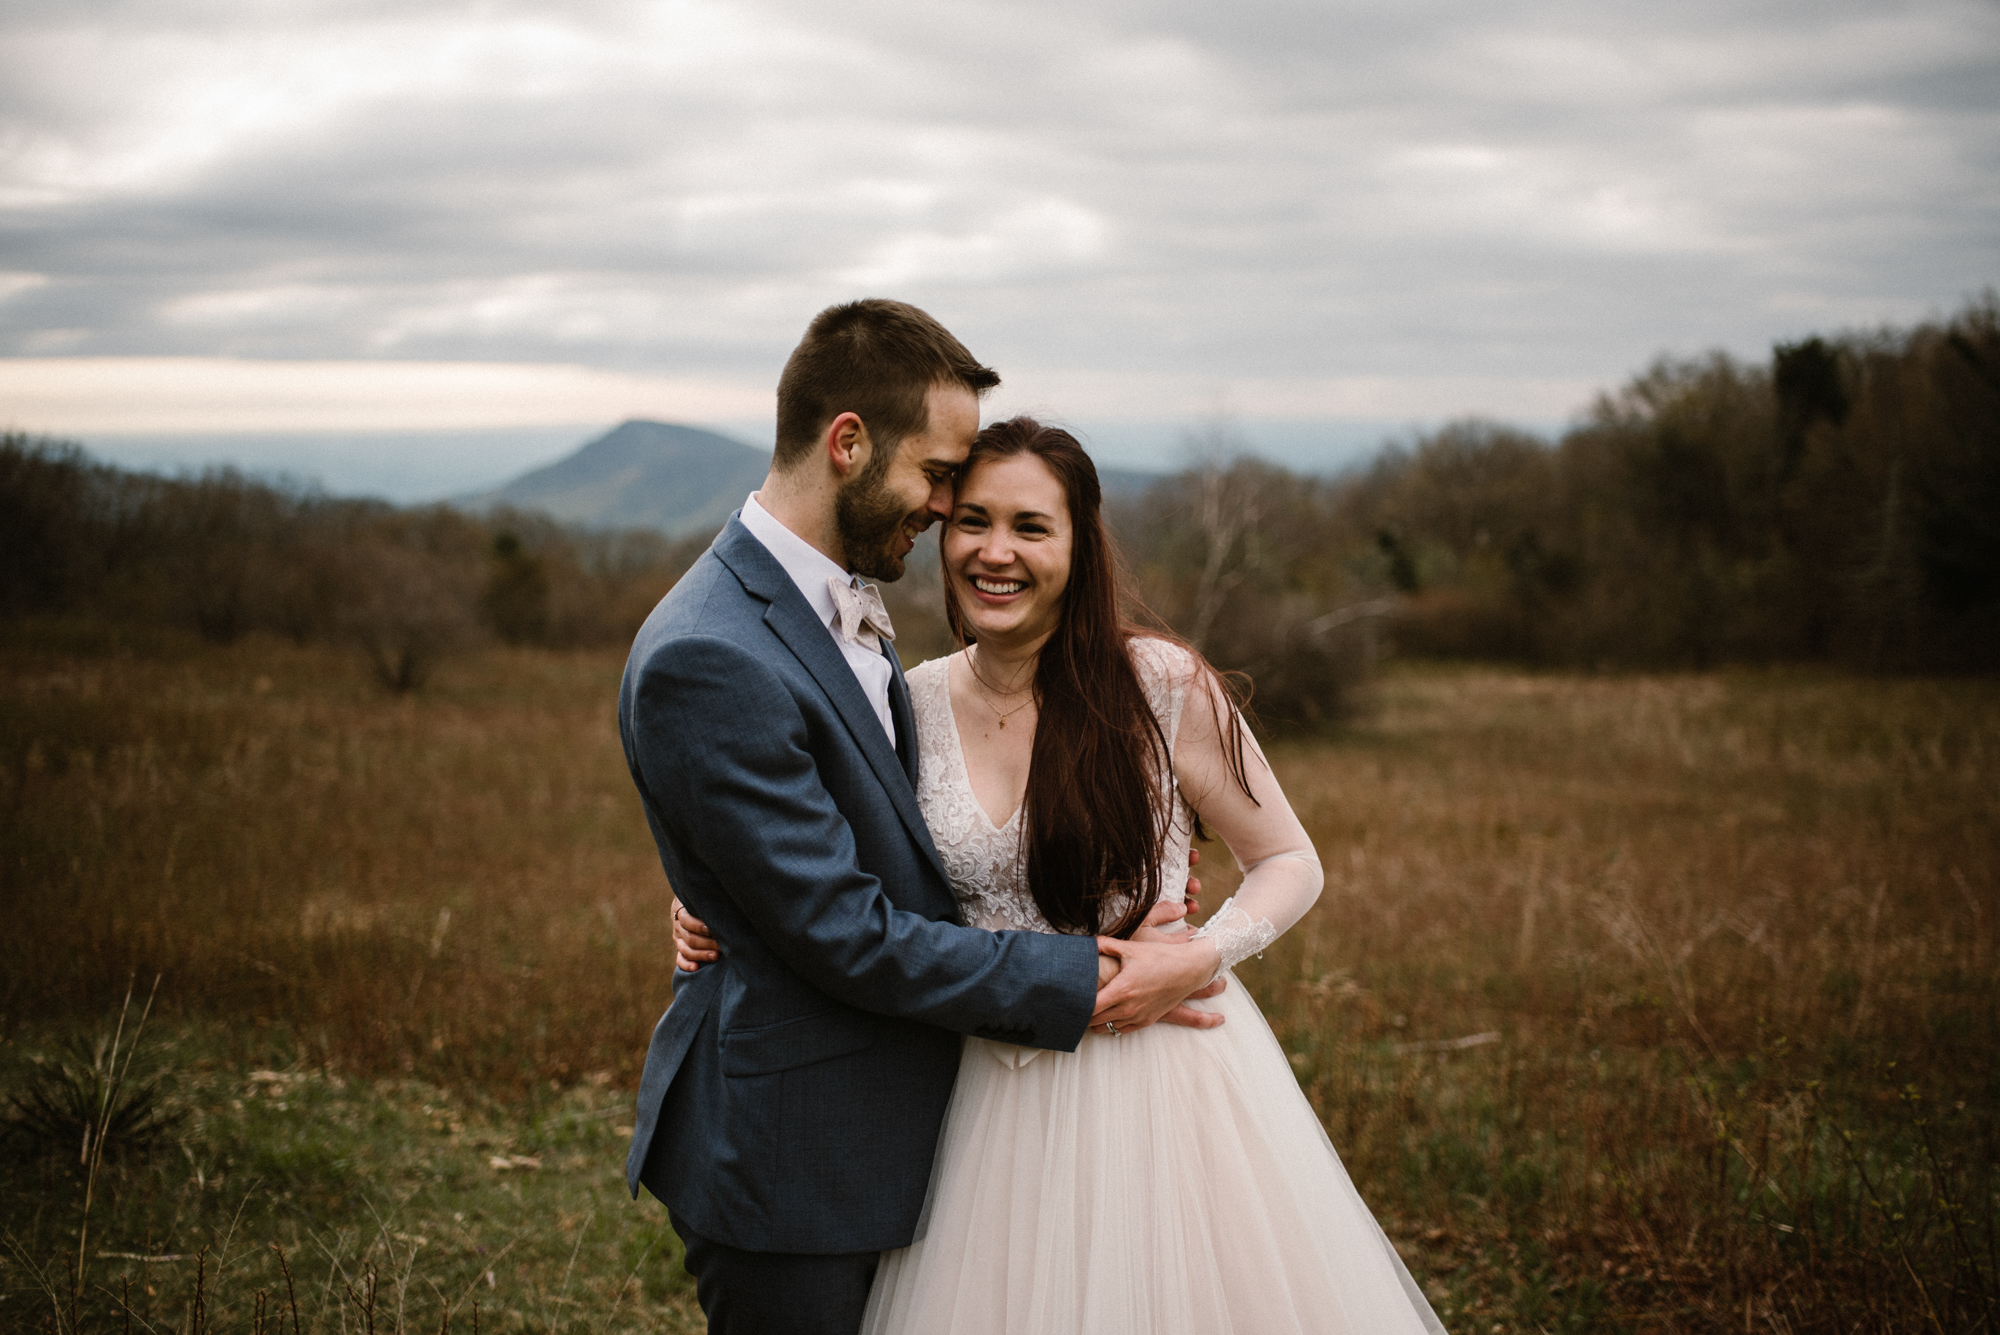 Paula and Andrew - Small Adventurous Wedding in Shenandoah National Park - Blue Ridge Mountain Wedding - White Sails Creative - Mountain Elopement_40.jpg